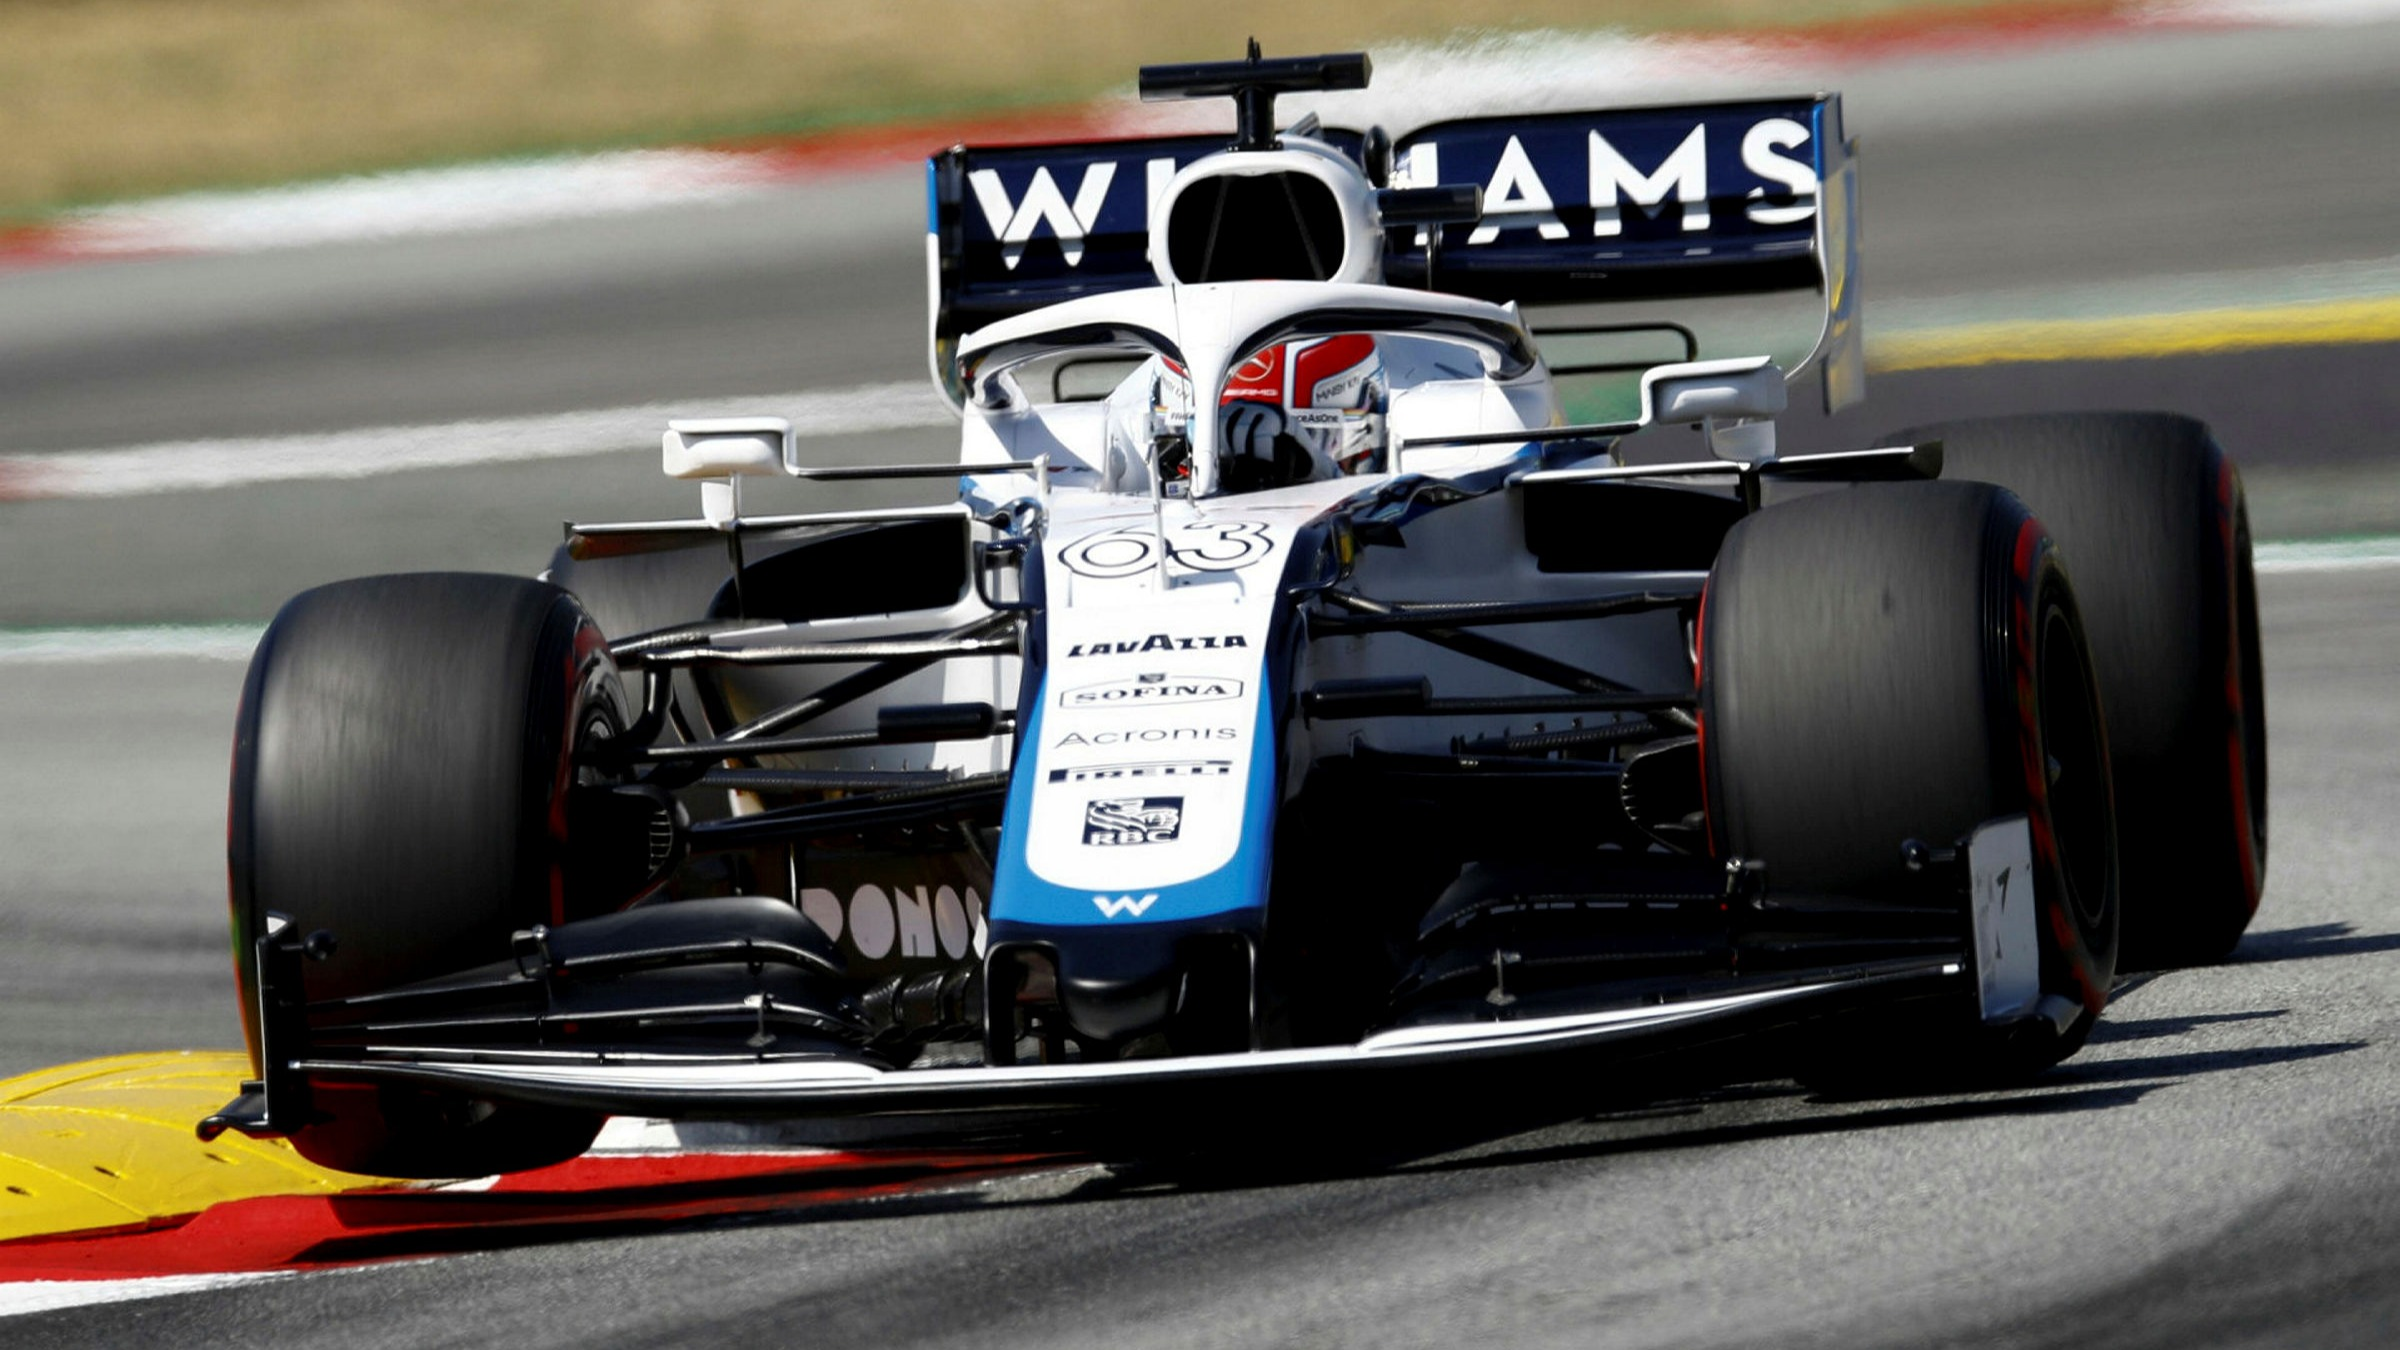 Williams F1 Team Sold To Us Investors To Secure Financial Future Financial Times